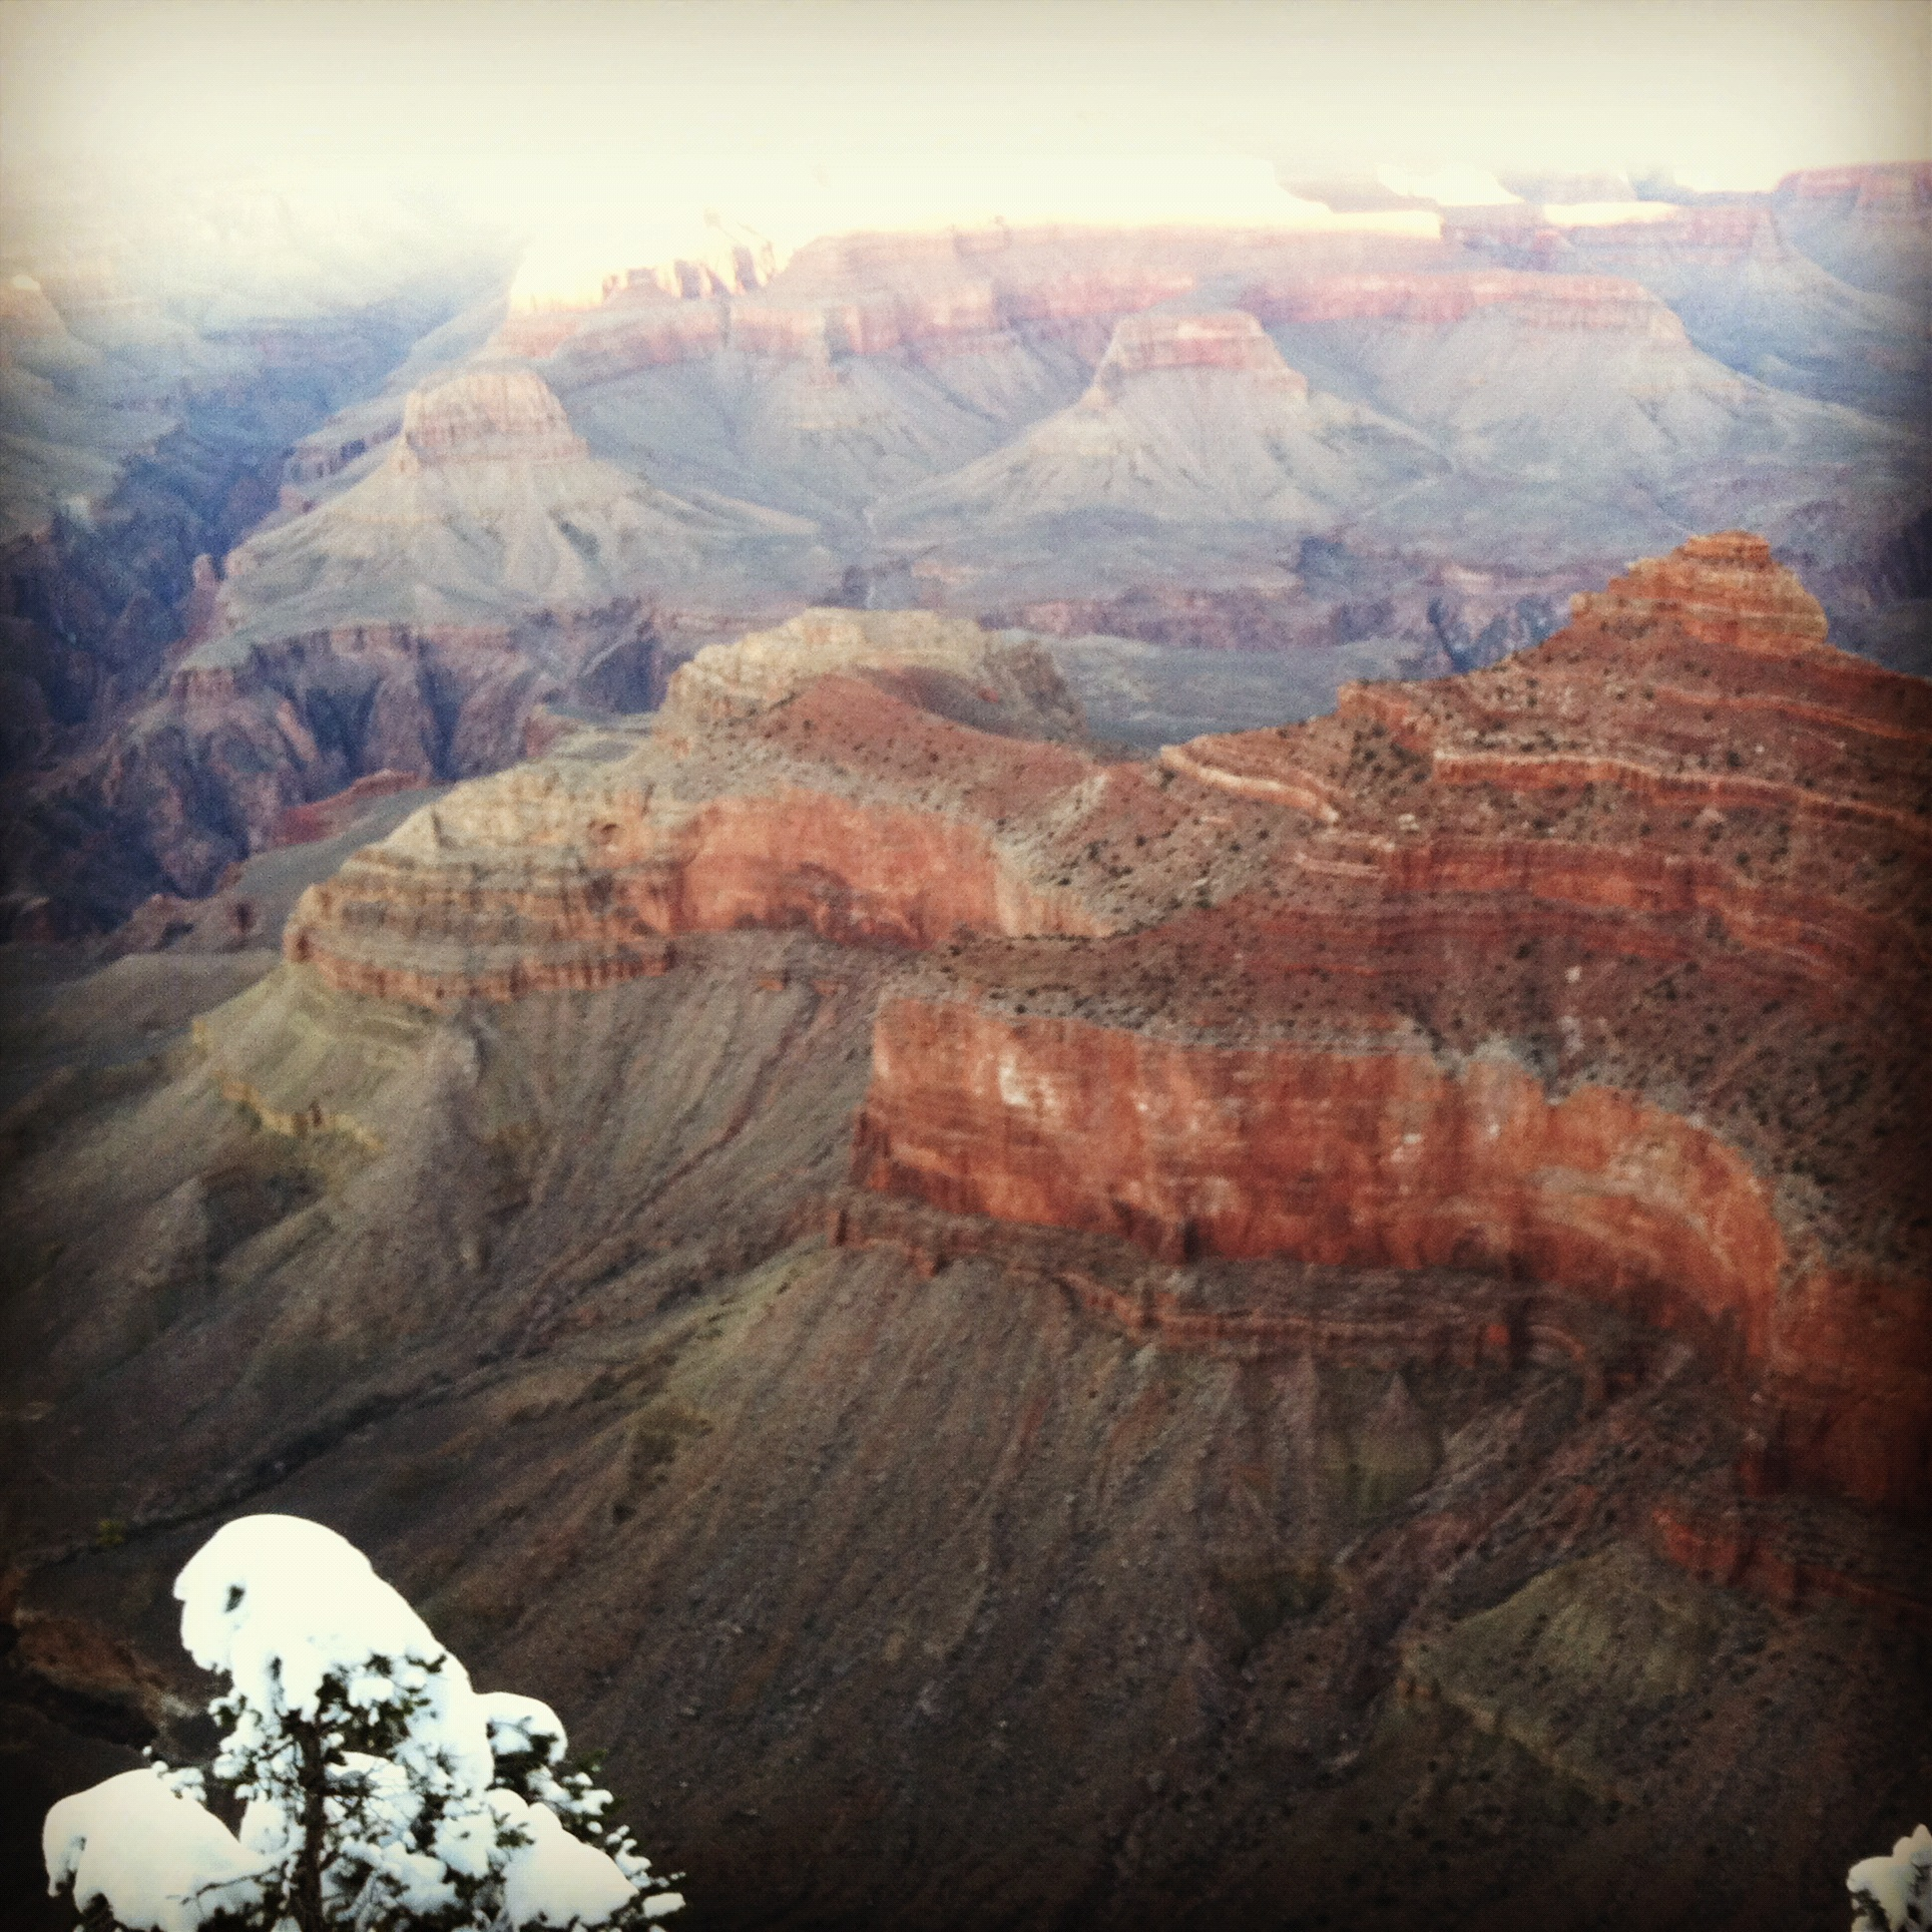 The Grand Canyon is most definitely grand.